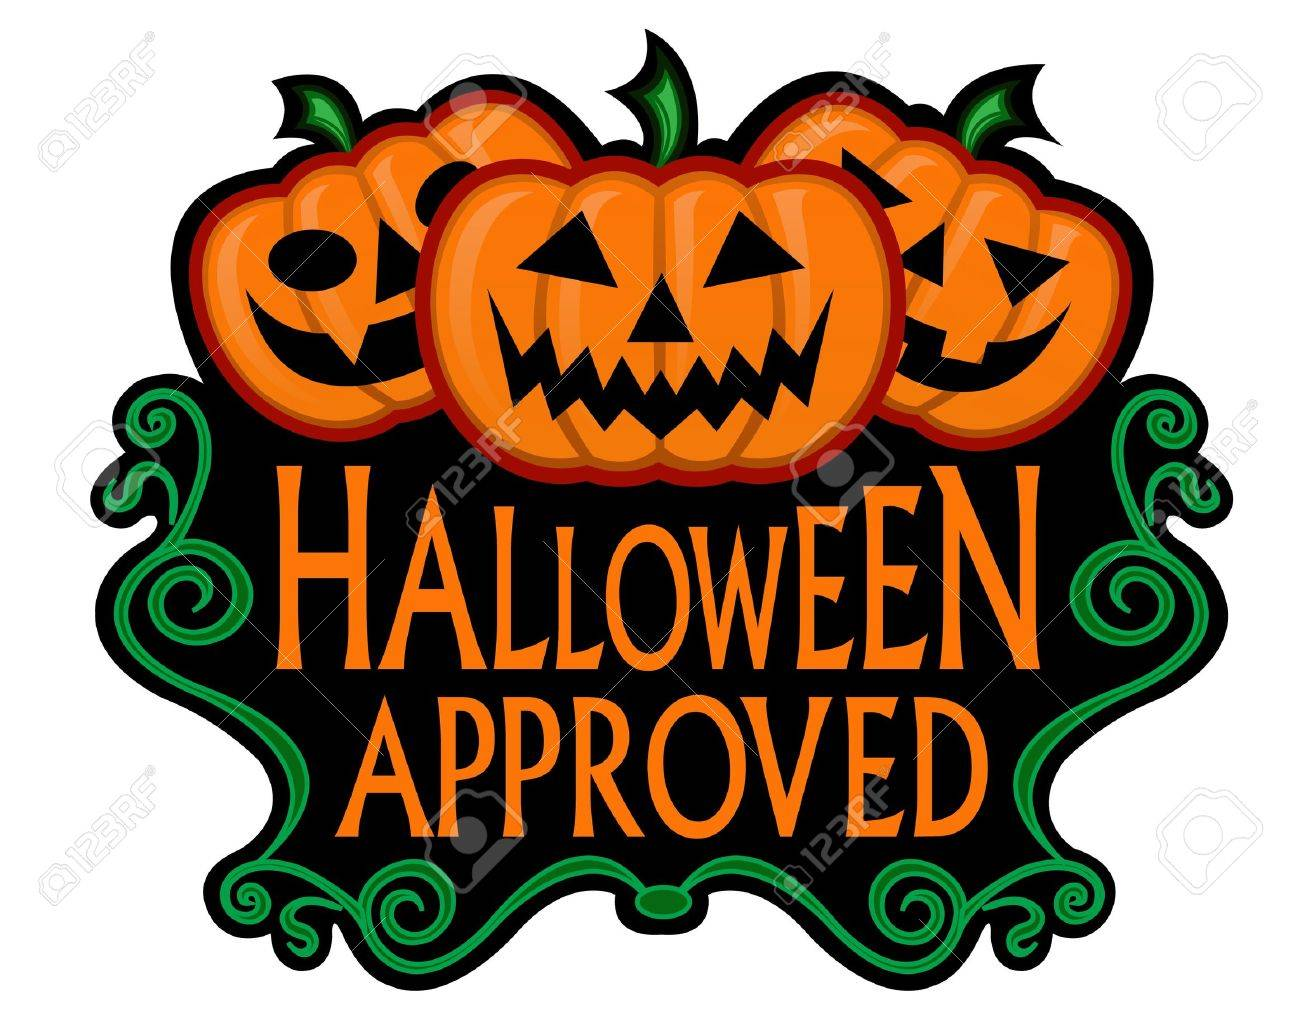 Halloween Approved Label Stock Vector - 9674537